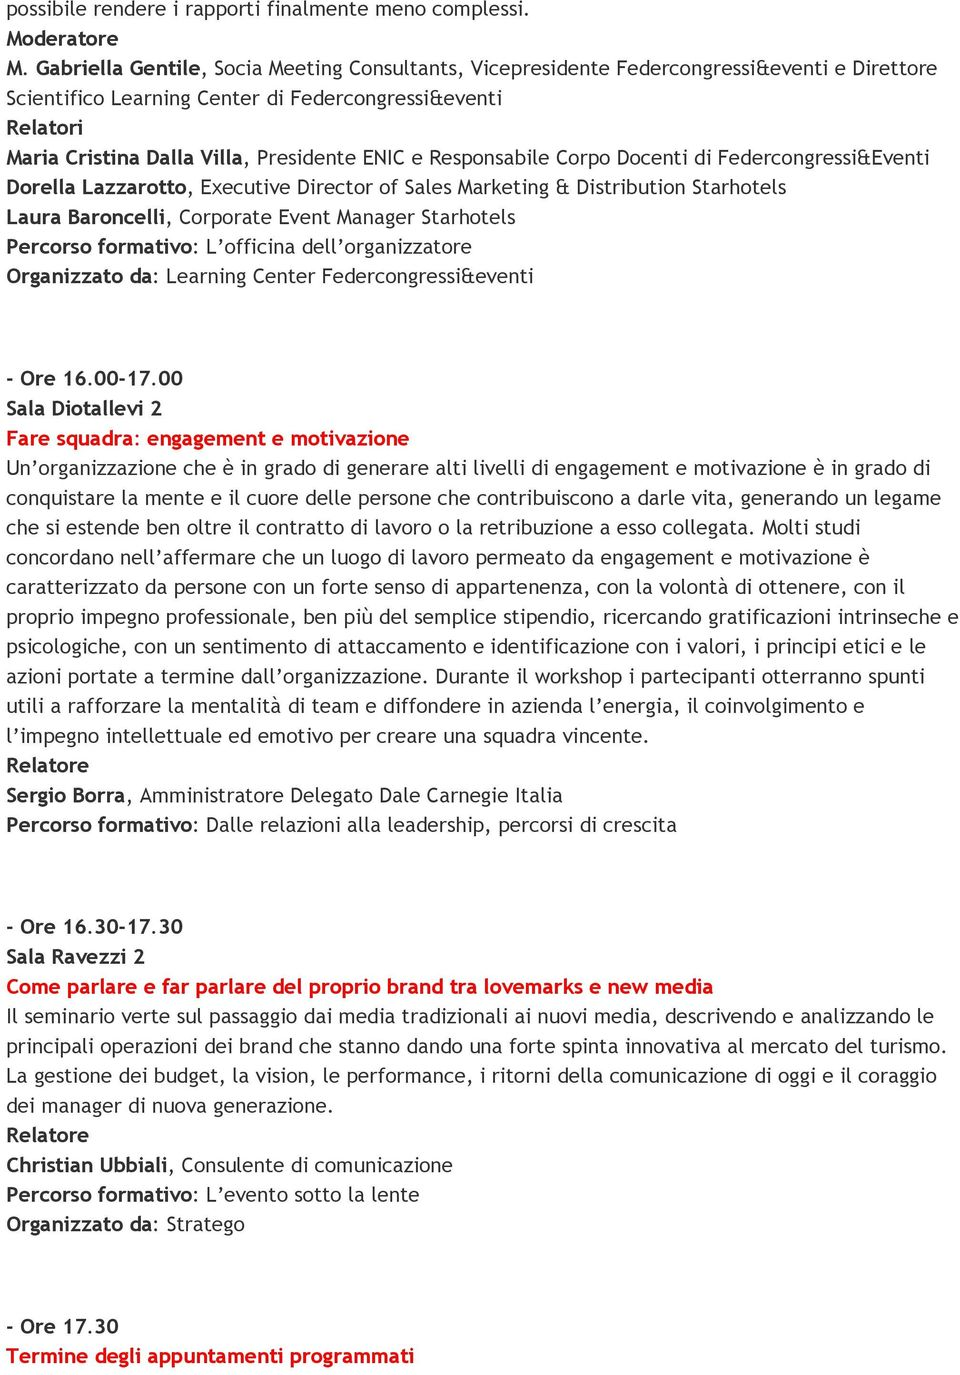 Responsabile Corpo Docenti di Federcongressi&Eventi Dorella Lazzarotto, Executive Director of Sales Marketing & Distribution Starhotels Laura Baroncelli, Corporate Event Manager Starhotels Percorso